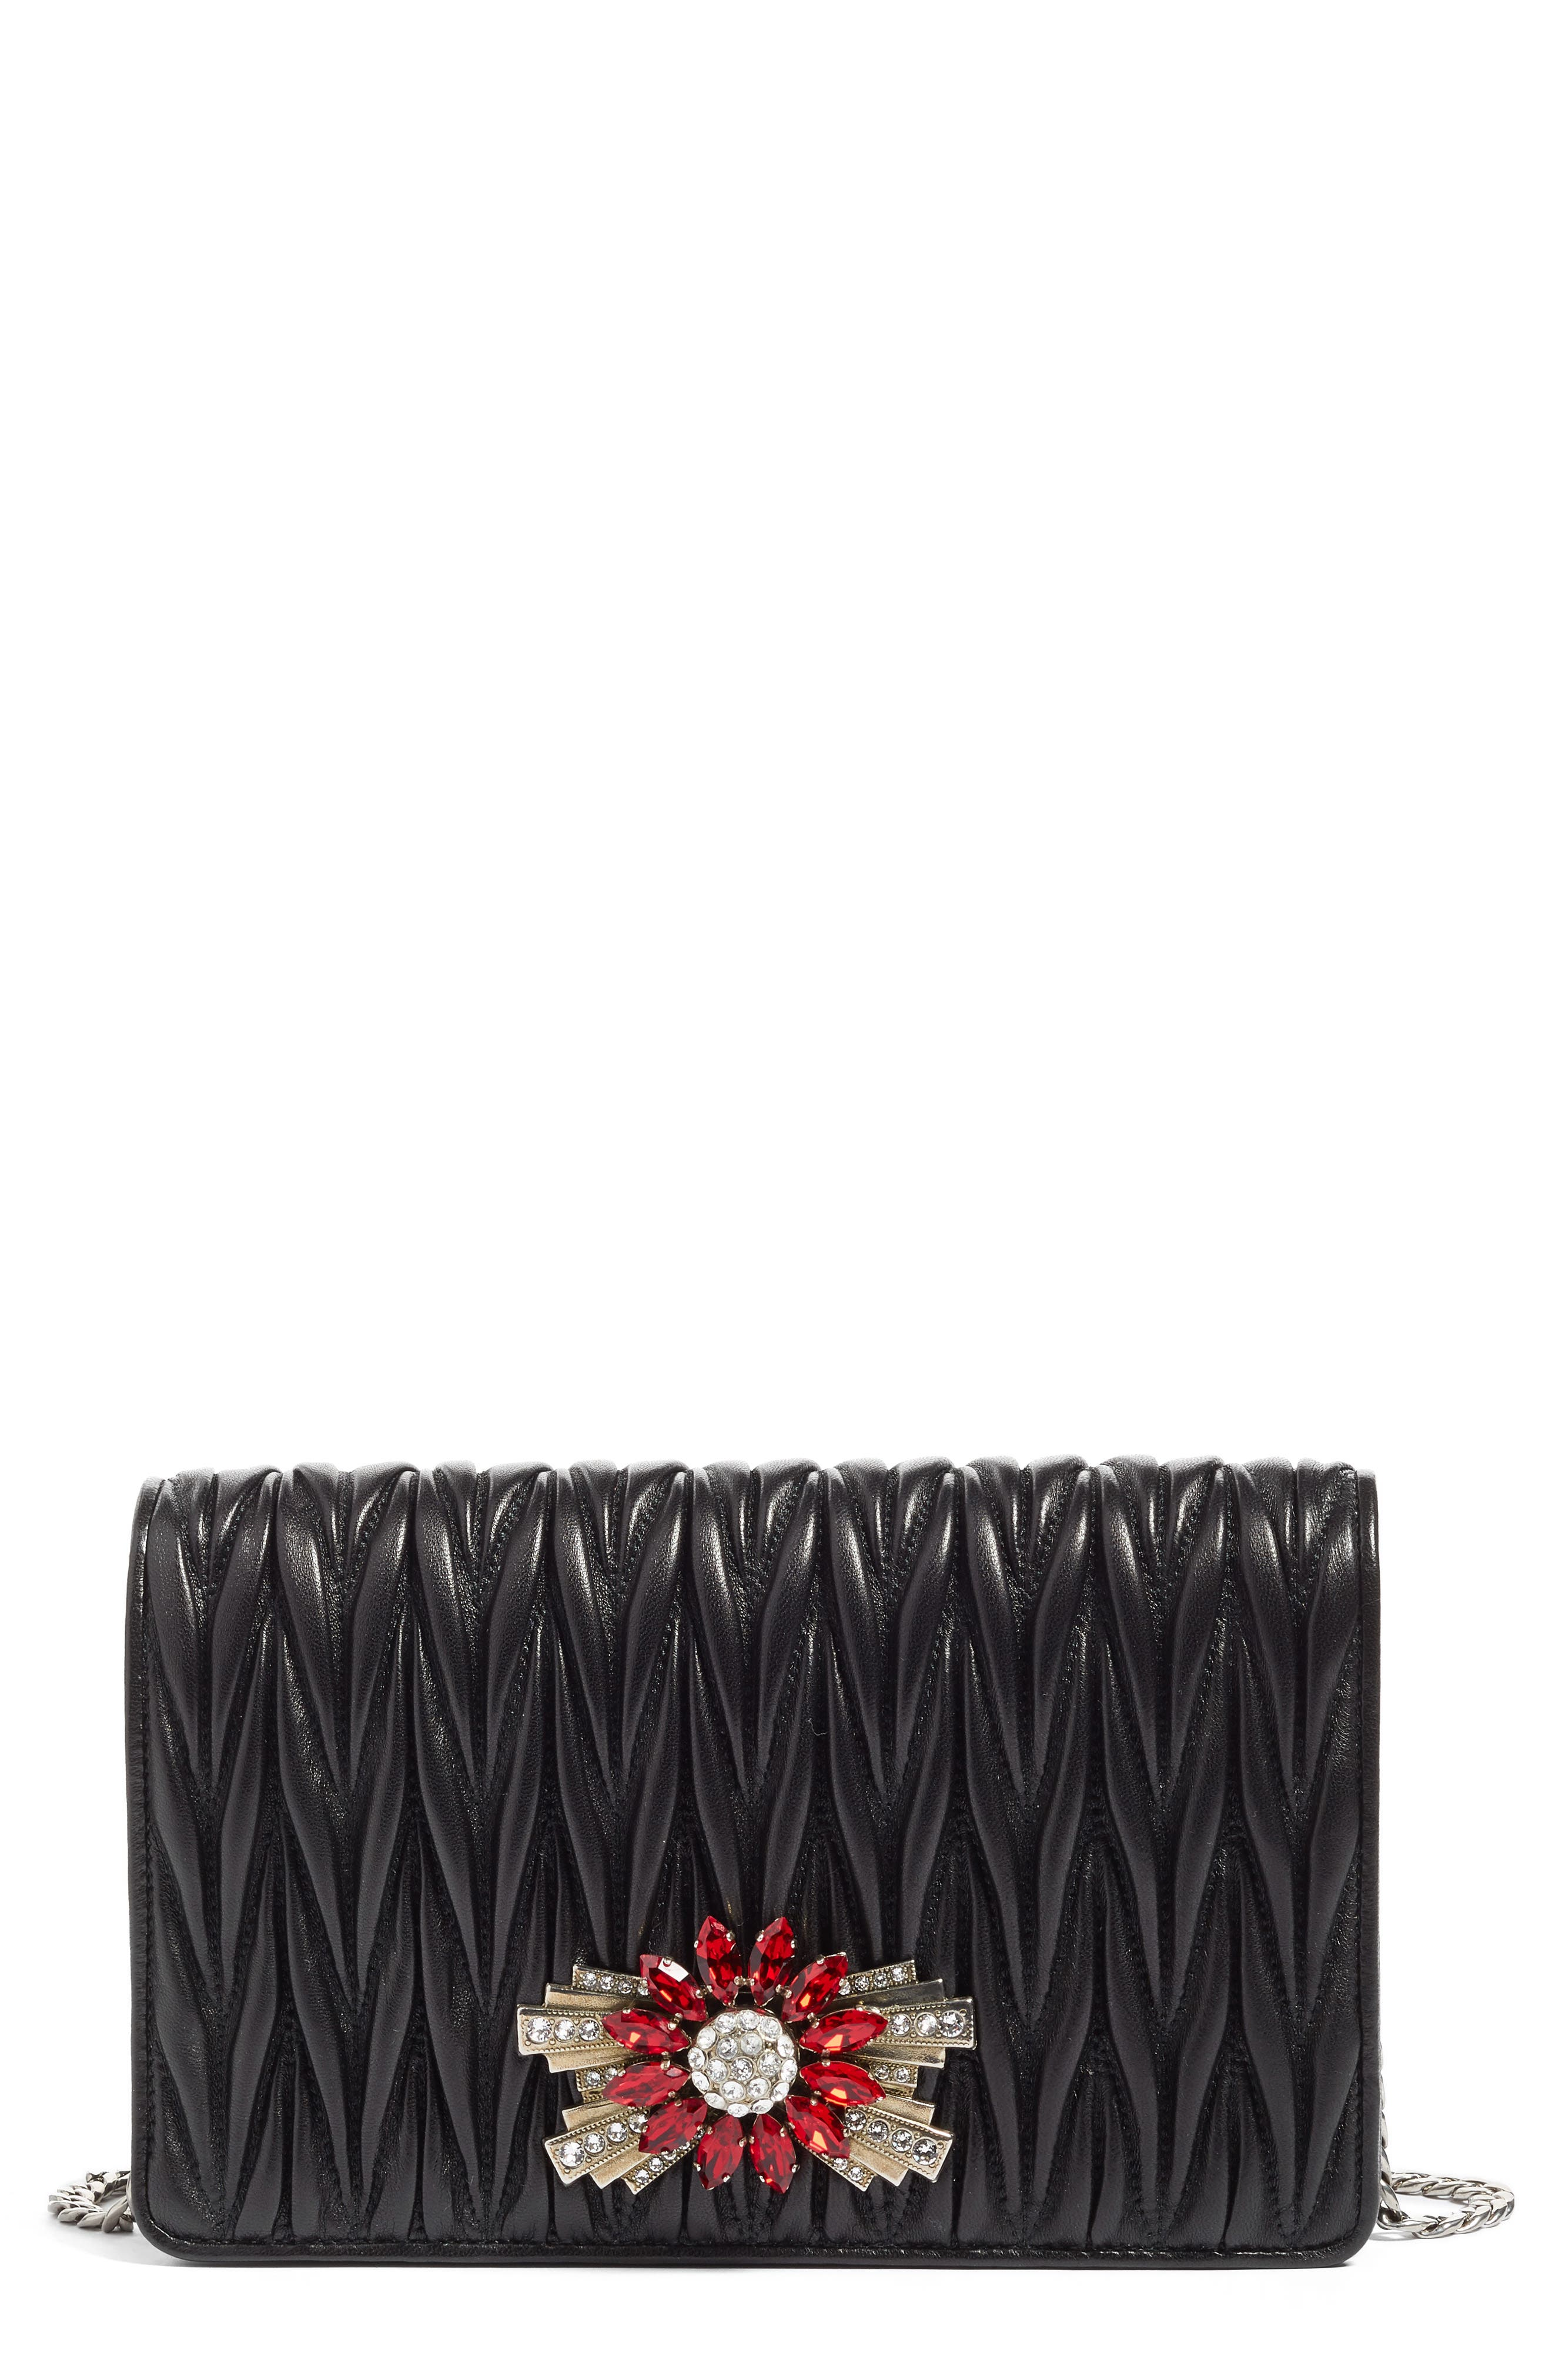 Alternate Image 1 Selected - Miu Miu Delice Matelassé Leather Wallet on a Chain